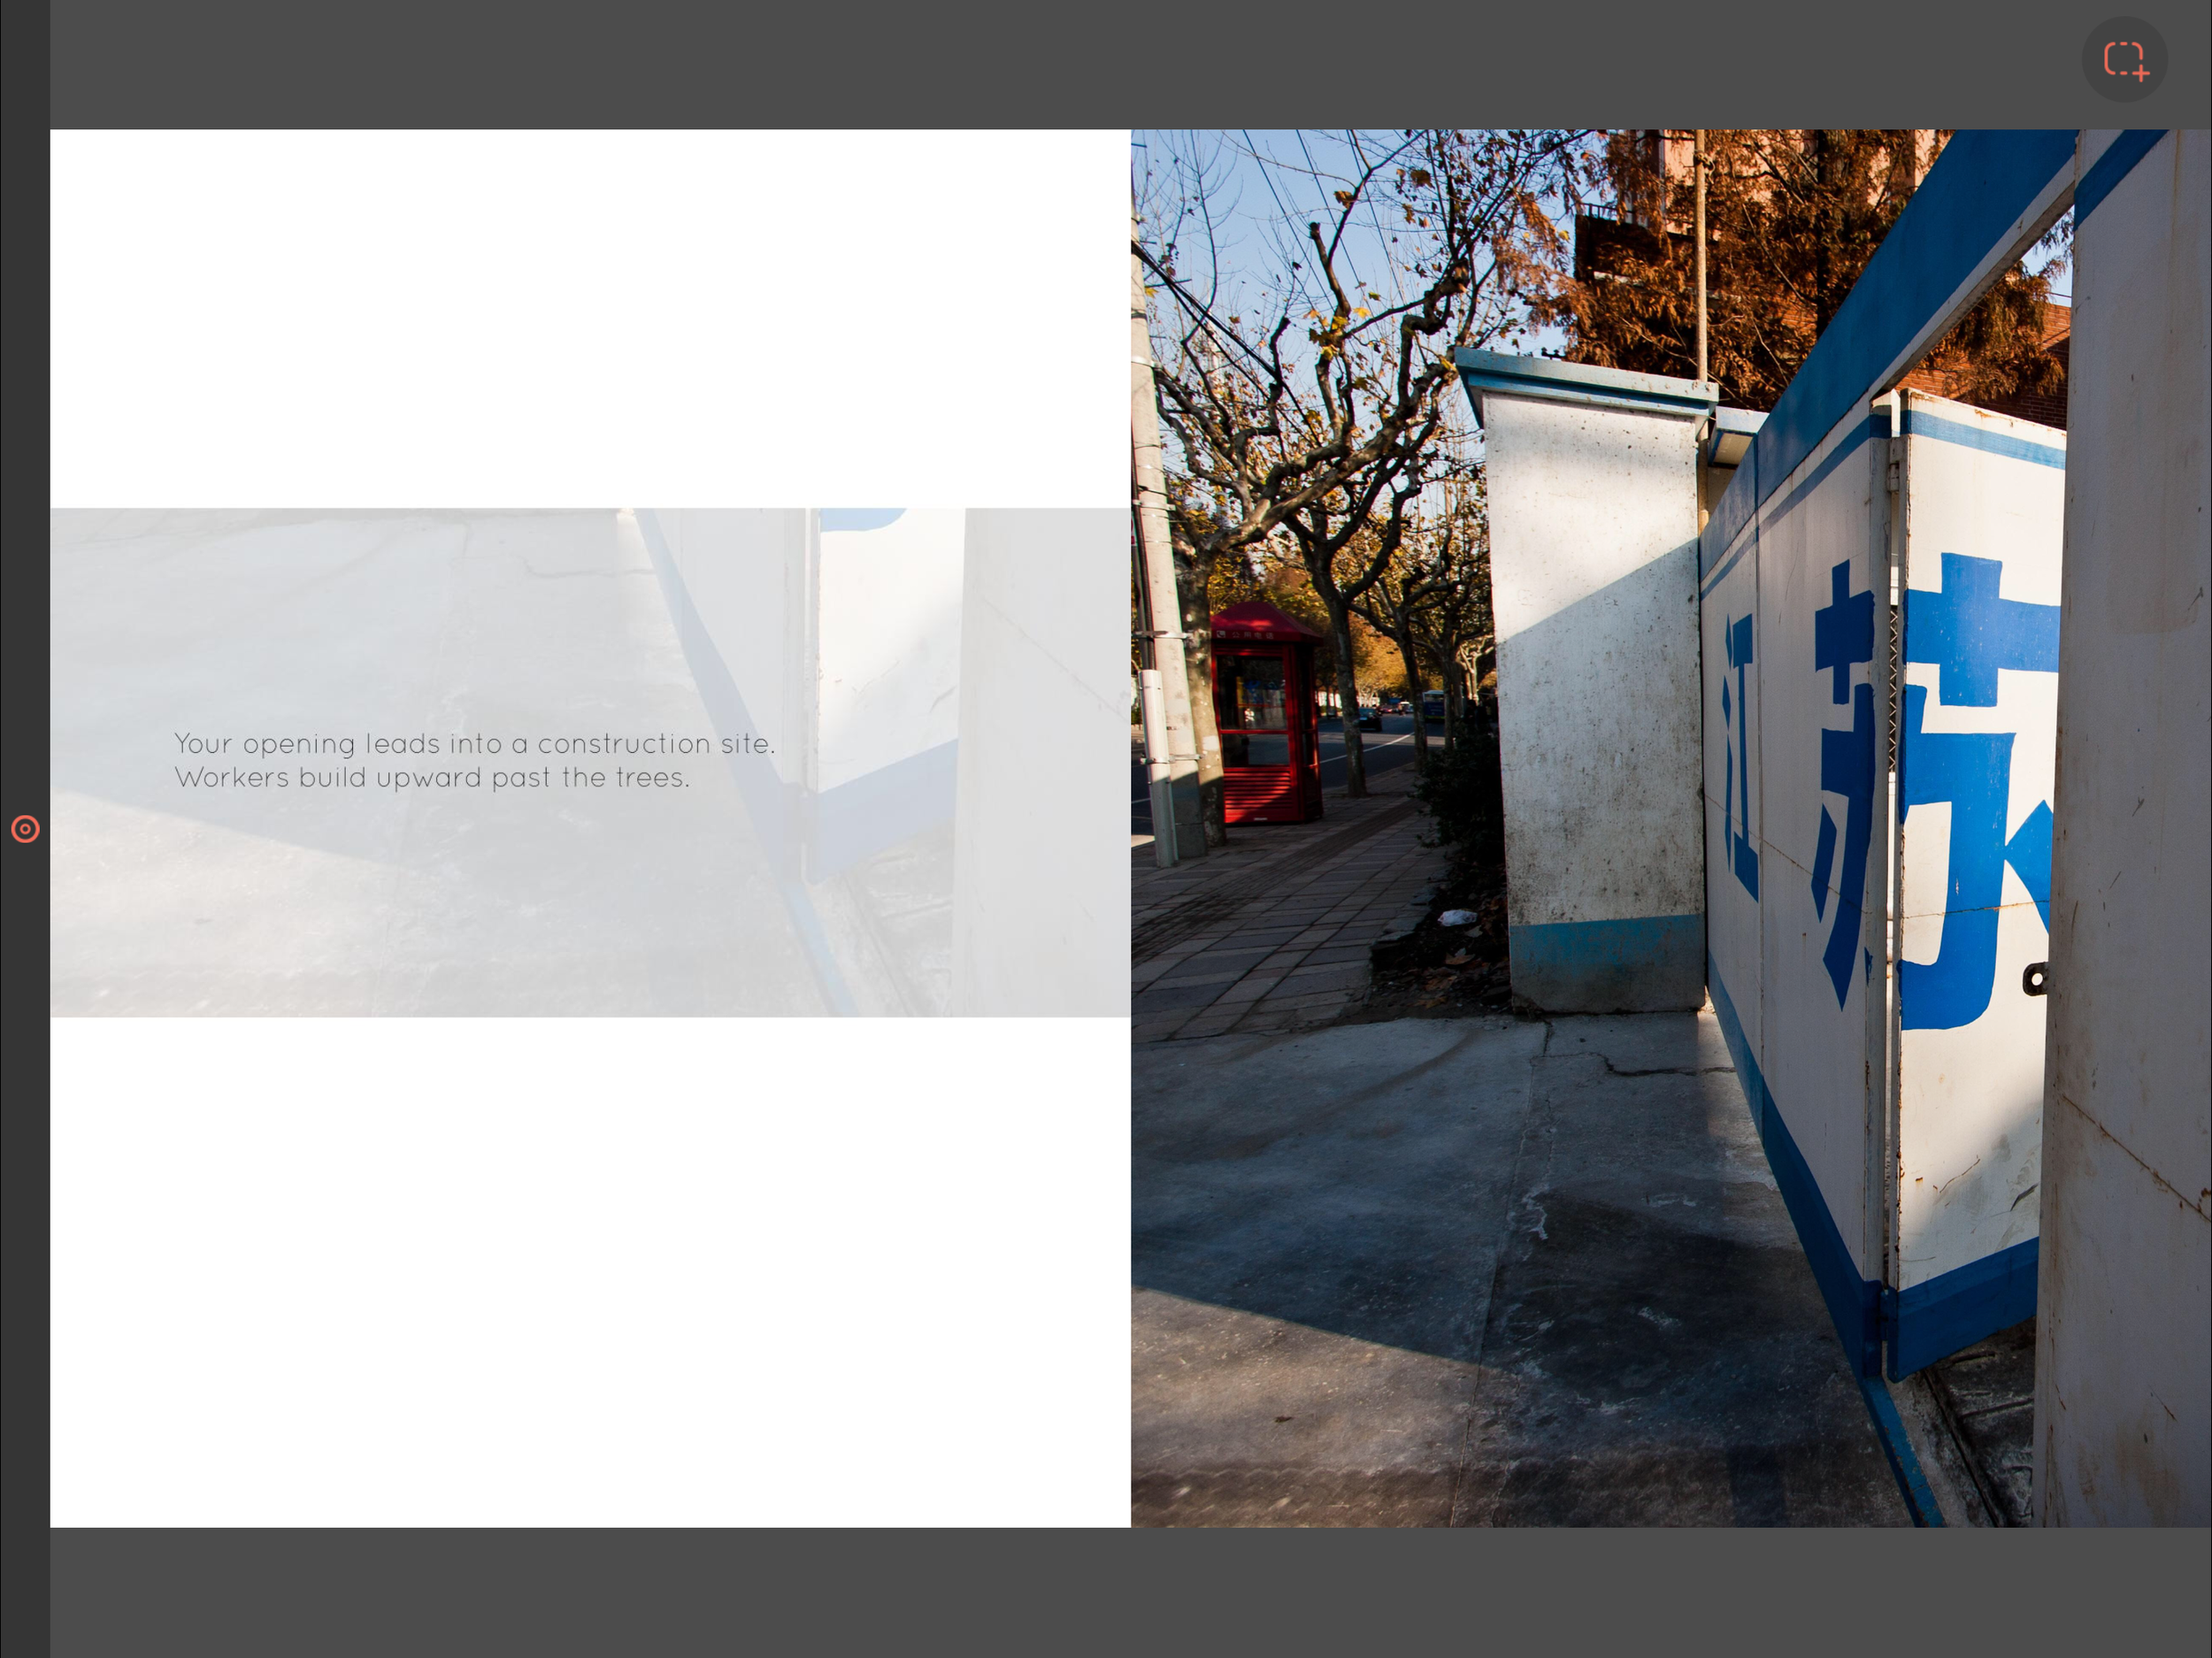 """""""Making Sense of Place: Shanghai"""" spread from online book (81 pgs.)   2016   8.5 x 11 inches   Photography, Graphic Design, and Writing   Description:  This is the first in an online   meditative book series exploring our connection with place."""